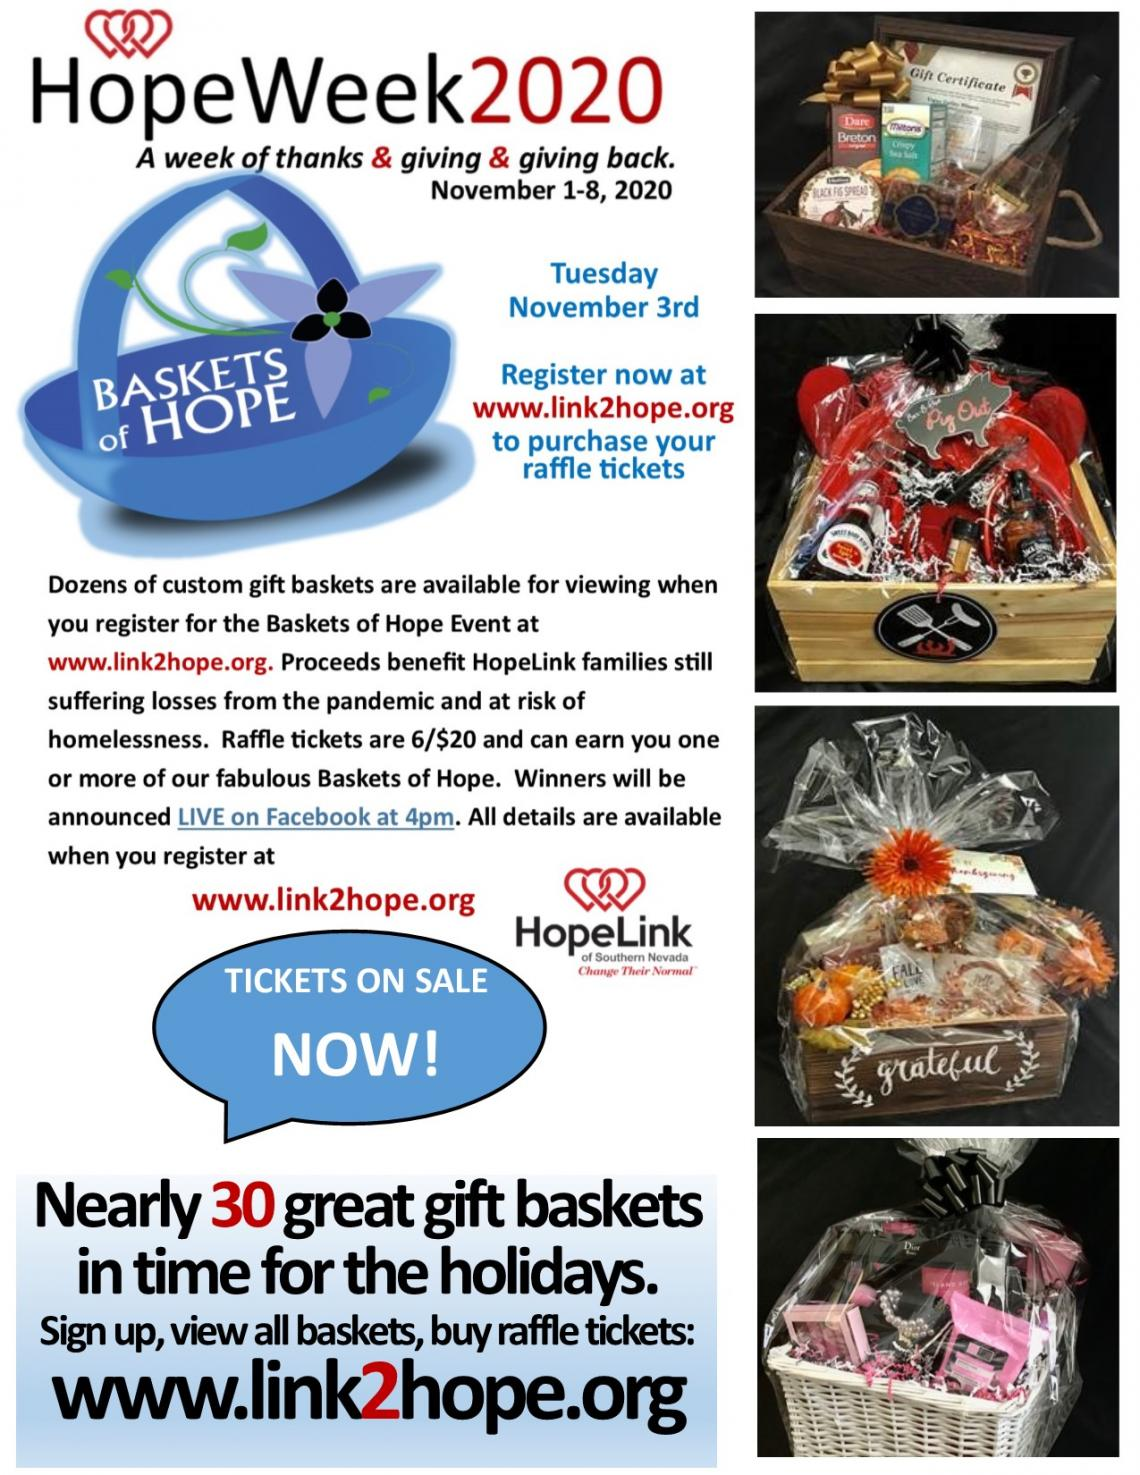 Baskets of Hope Raffle Tickets on sale through Noon Tues. Nov. 3